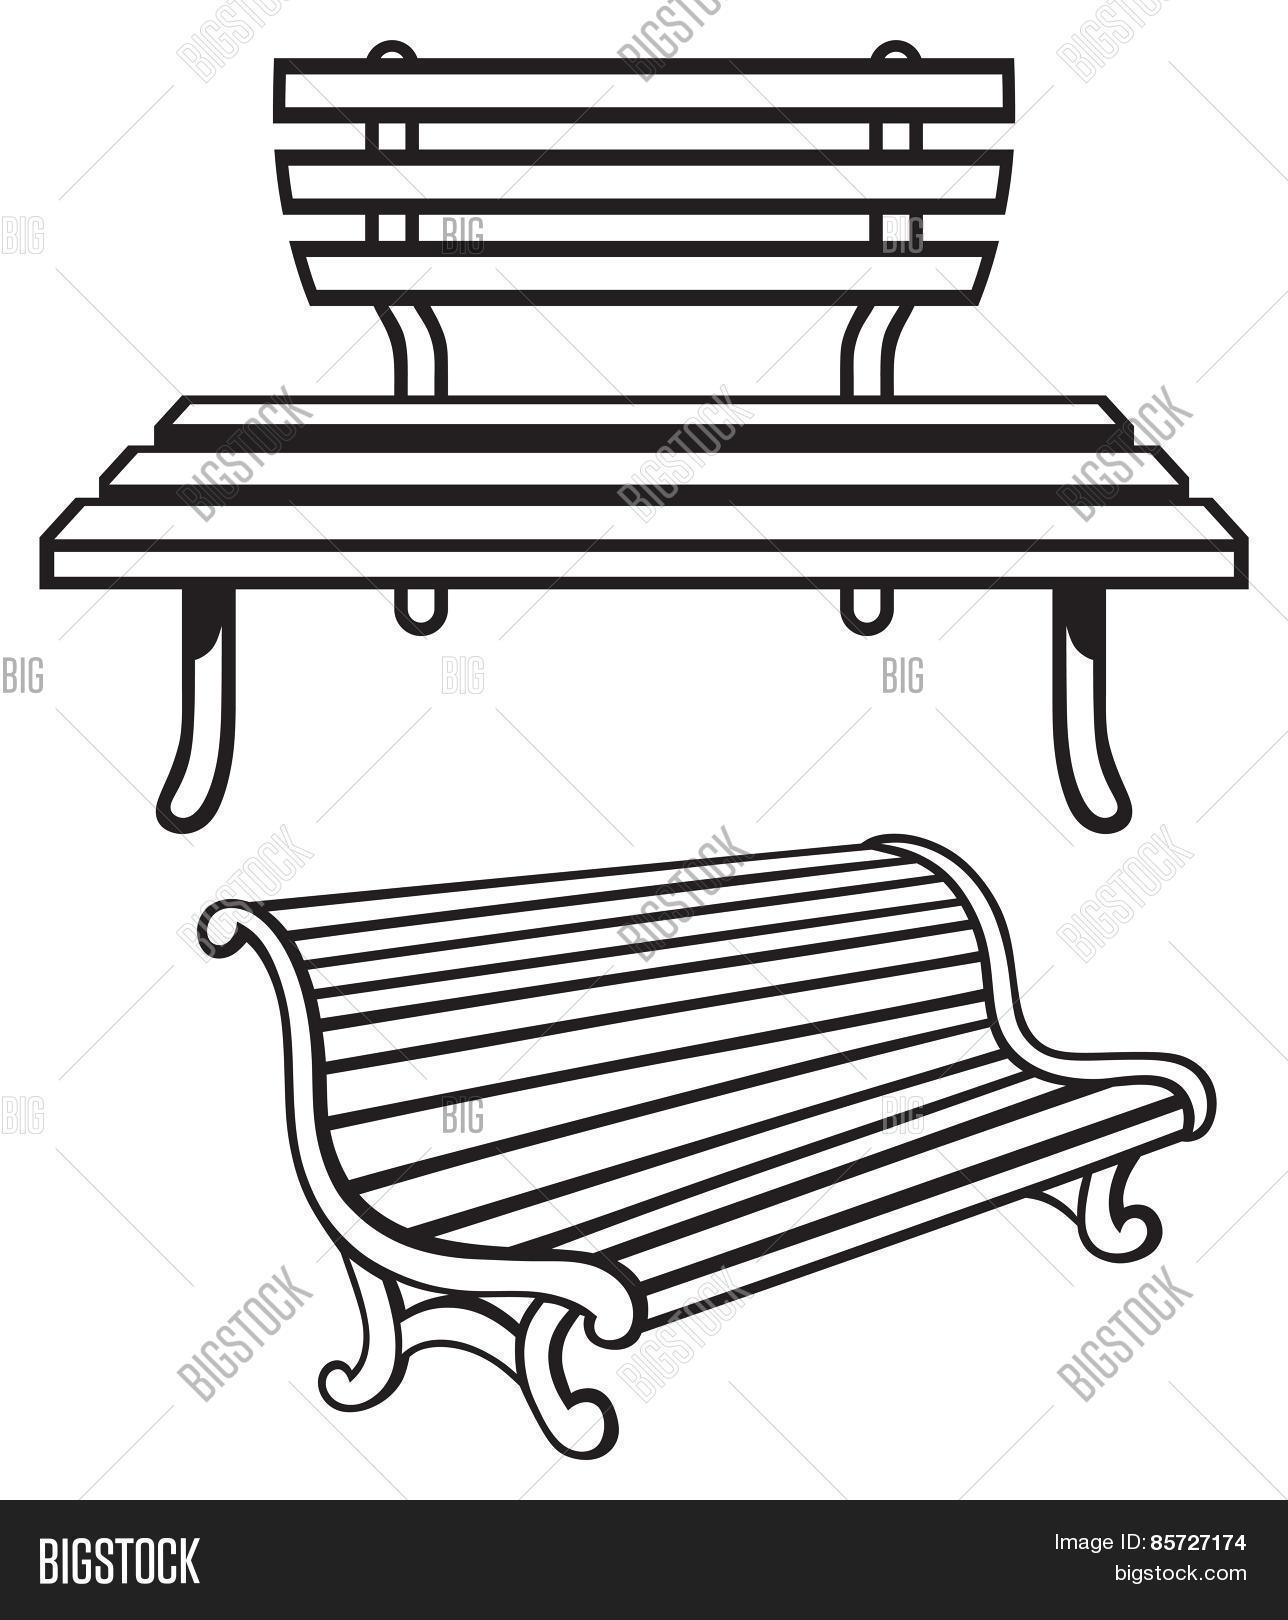 art,artistic,background,badge,bench,black,carefree,chair,clip,concept,contour,creative,design,draw,drawing,empty,furniture,garden,icon,illustration,image,isolated,leisure,nobody,object,outdoors,park,pattern,permit,pictogram,place,recreational,relax,relaxation,rest,seat,shape,shod,silhouette,sit,sofa,solitude,stencil,symbol,tranquil,vector,waiting,wooden